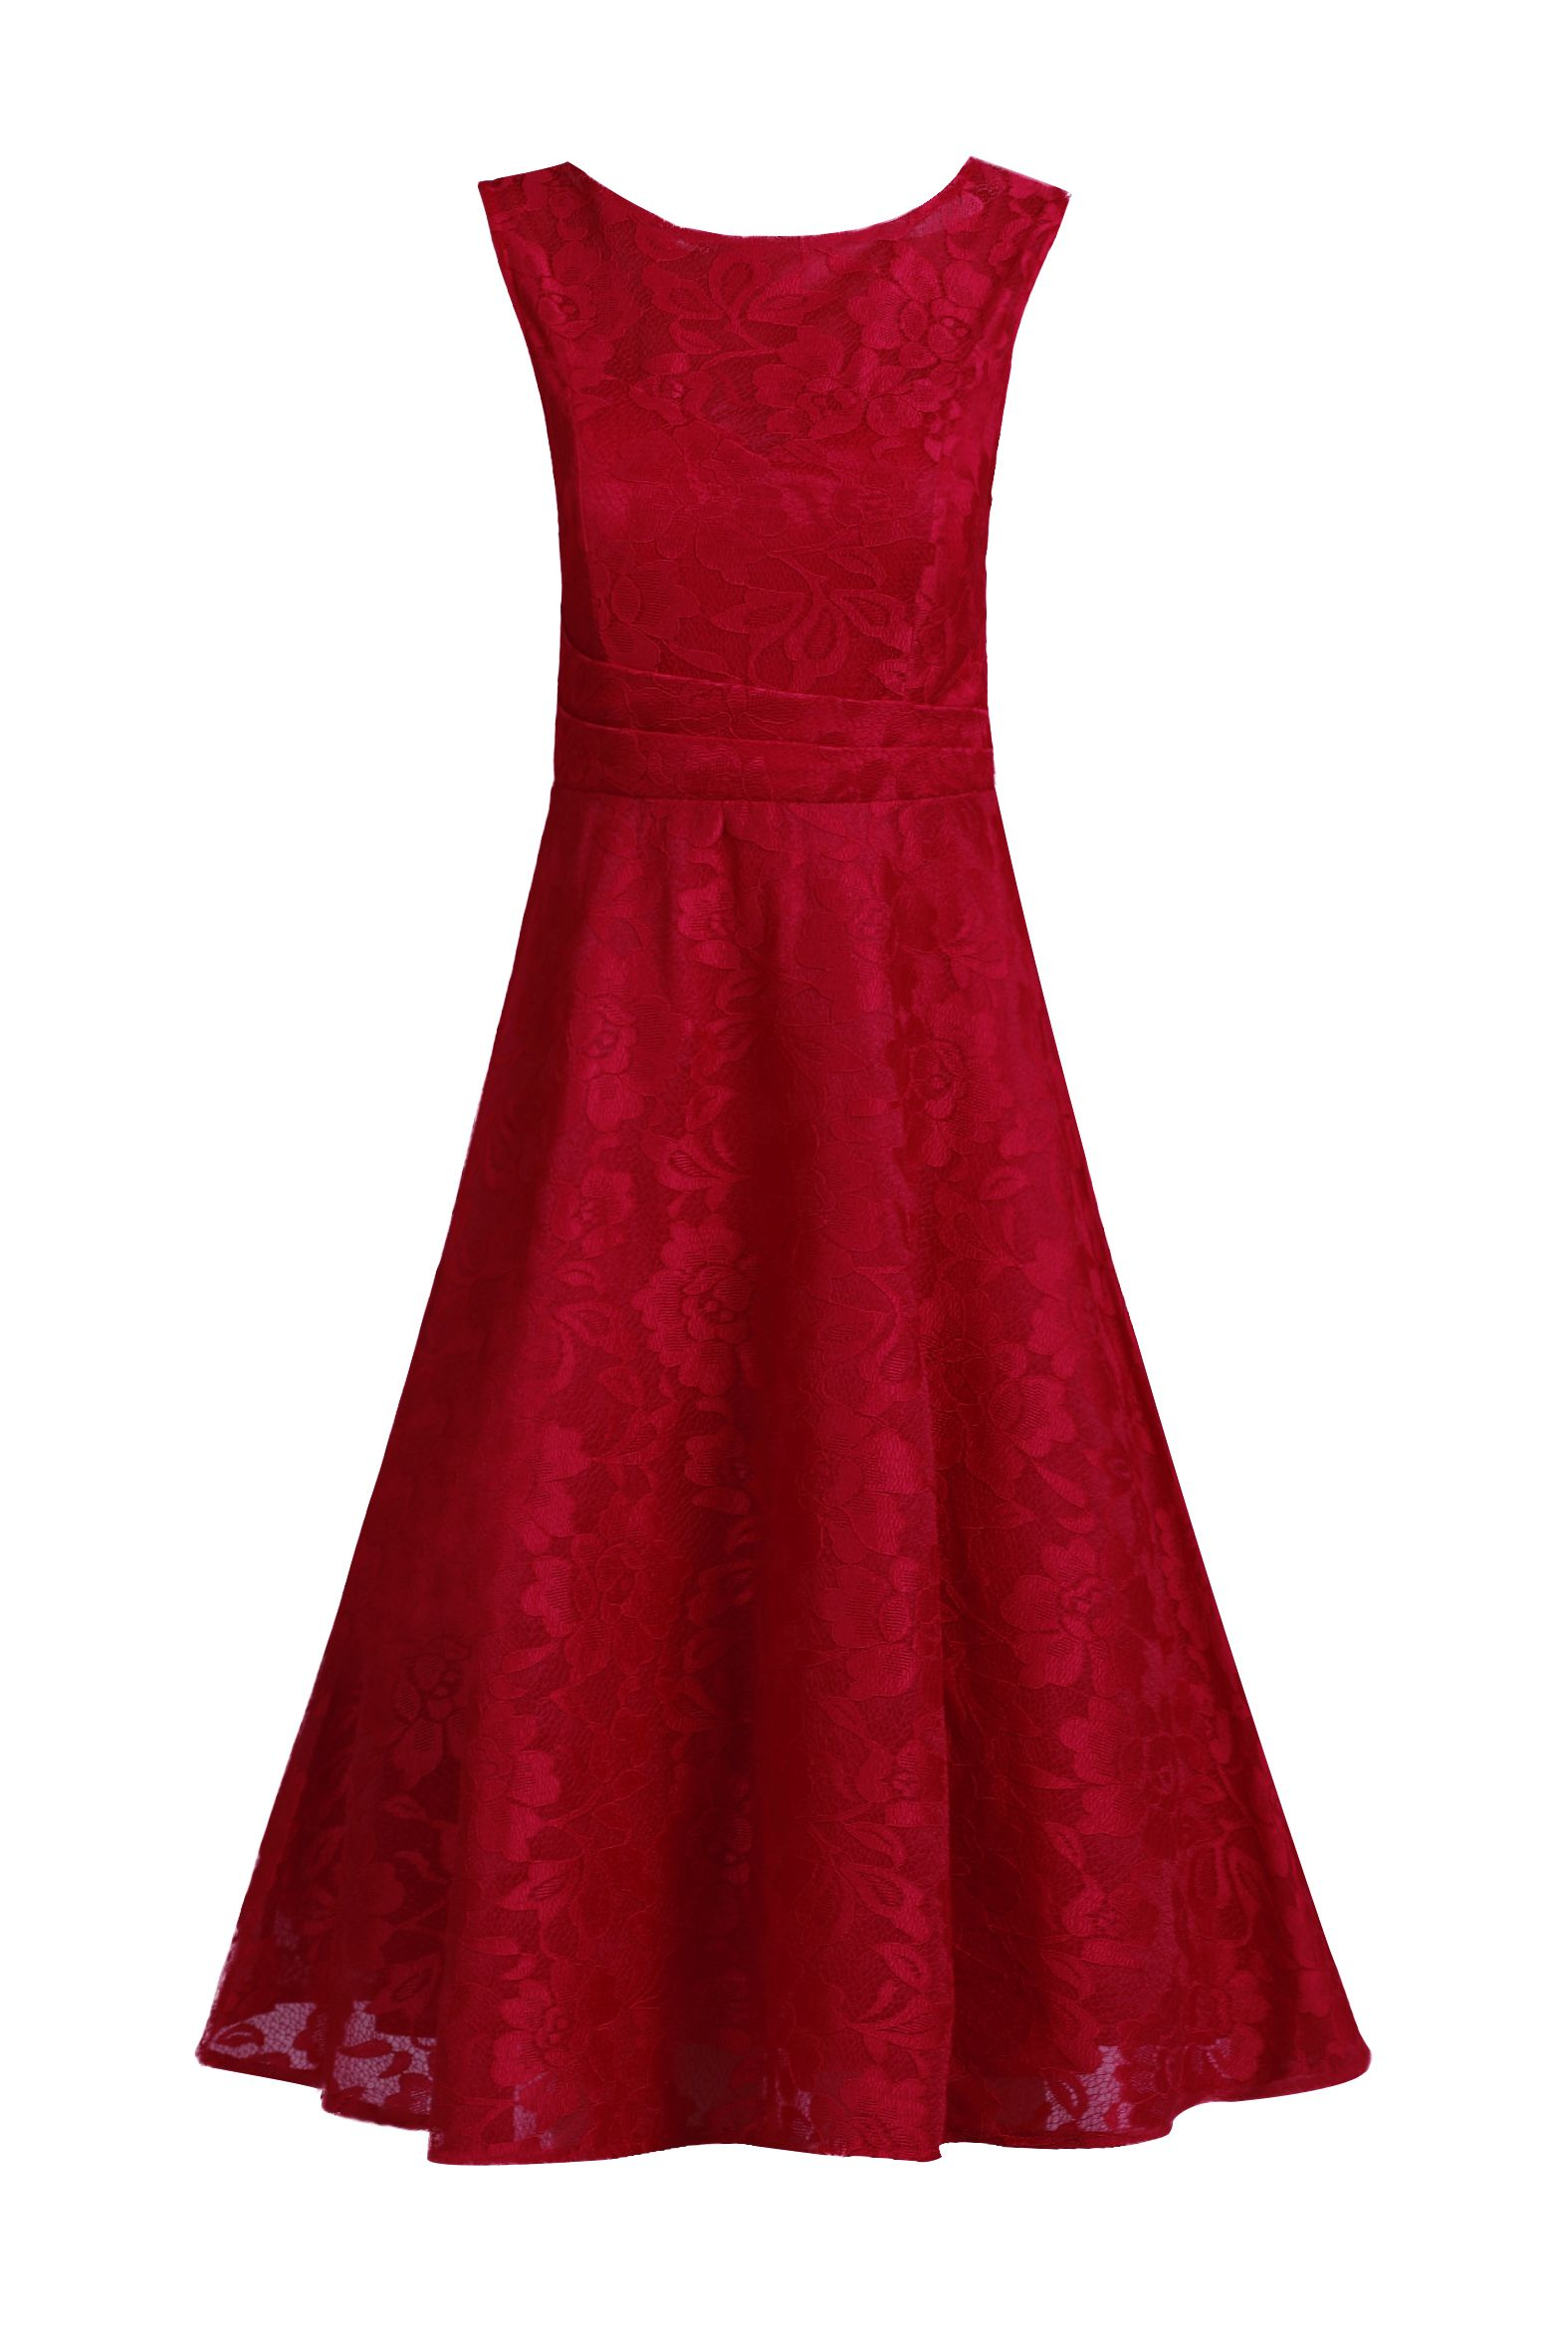 Jolie Moi Lace Bonded Fit and Flare Dress, Red